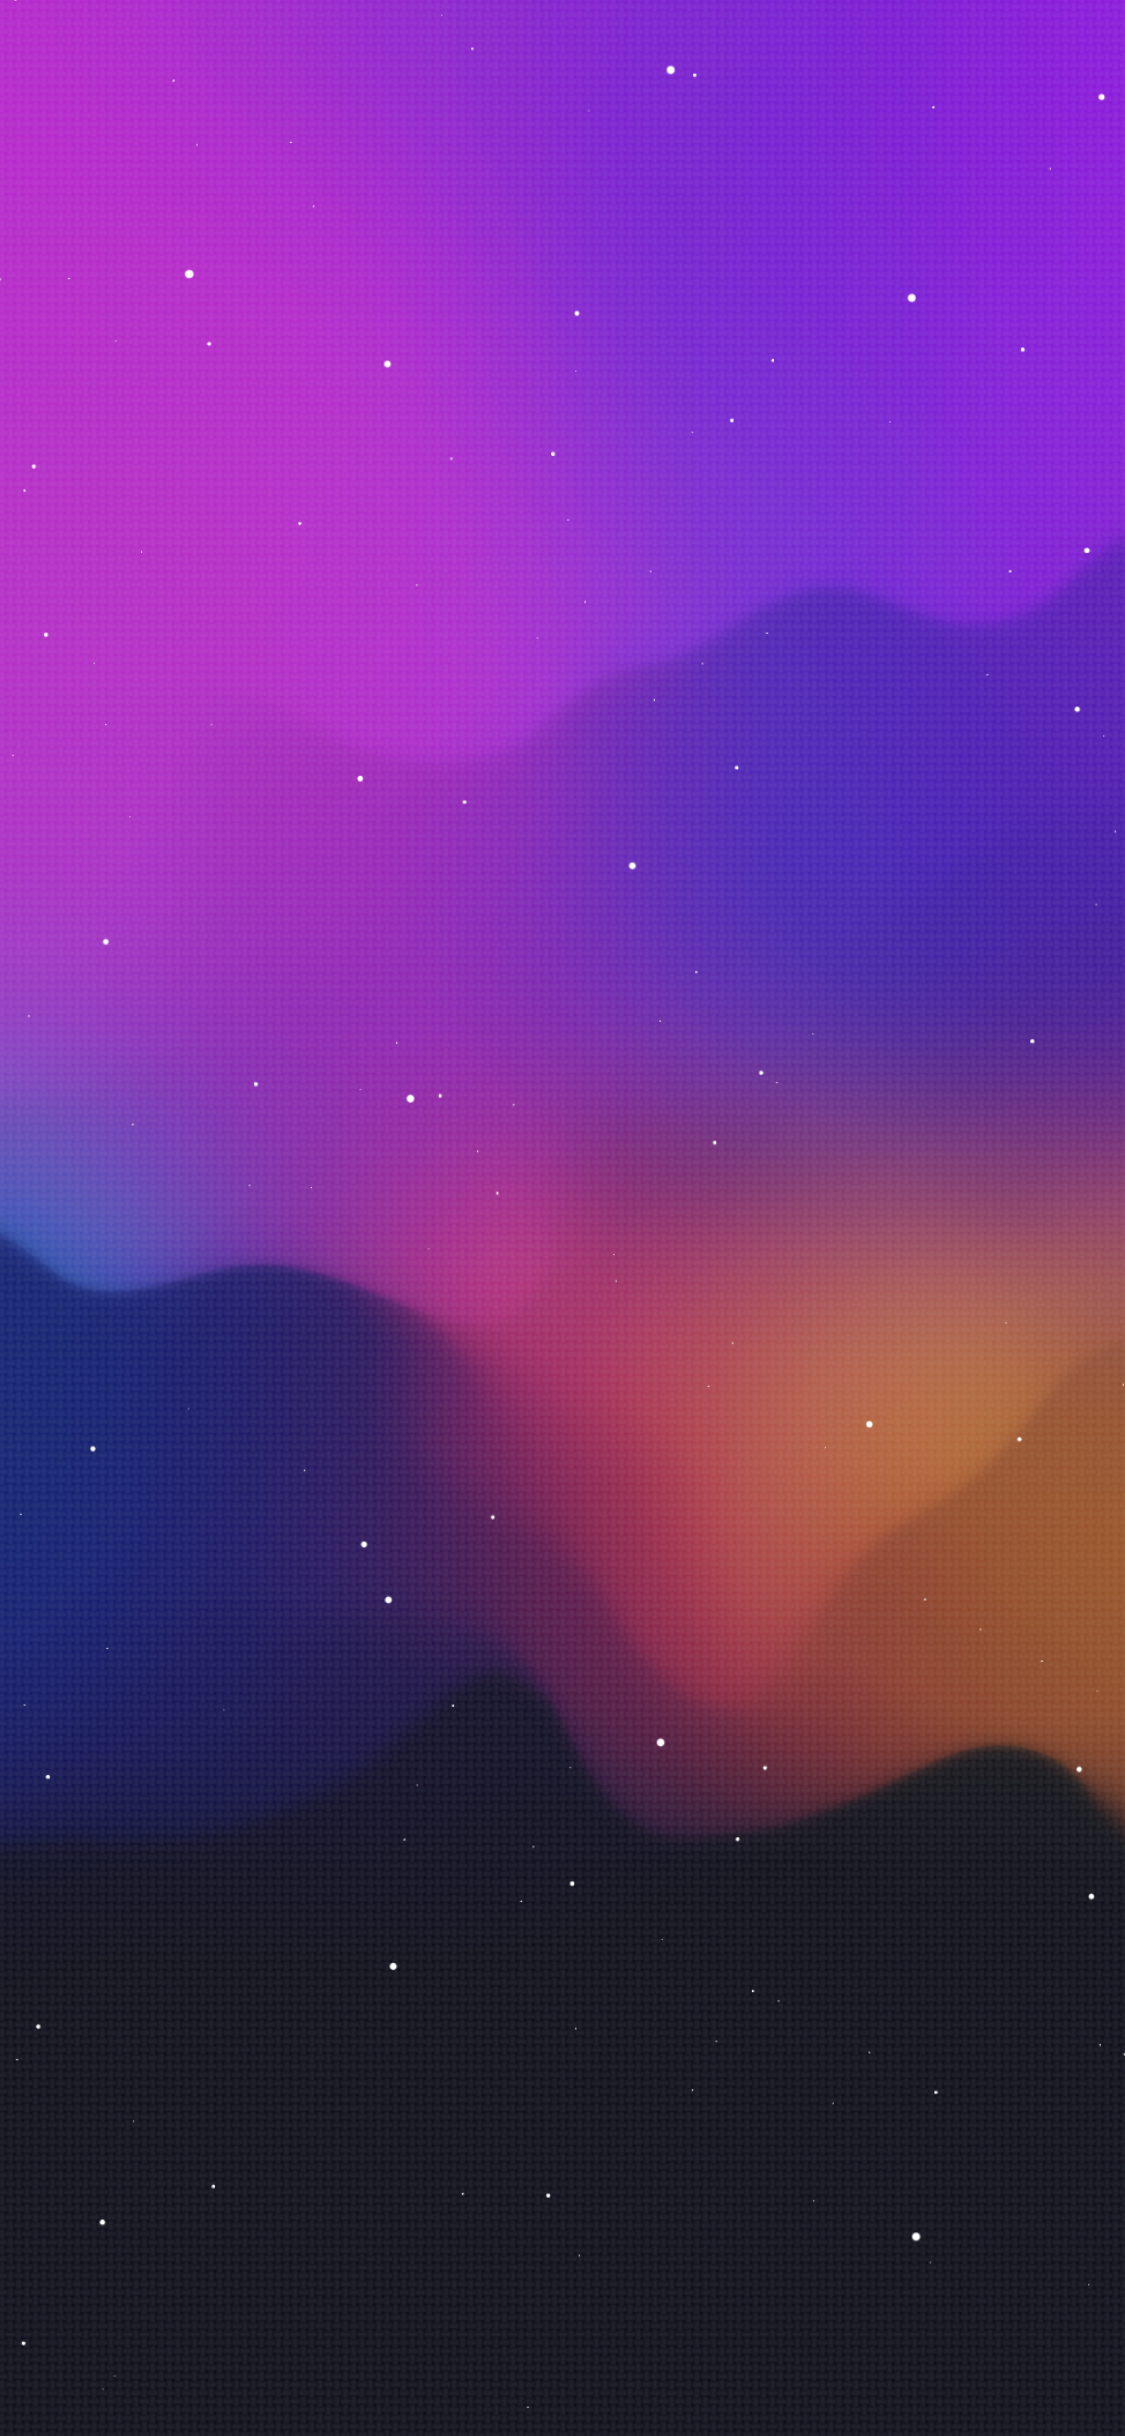 smooth vector iphone idownloadblog wallpaper notforyou666 purple organge galaxy